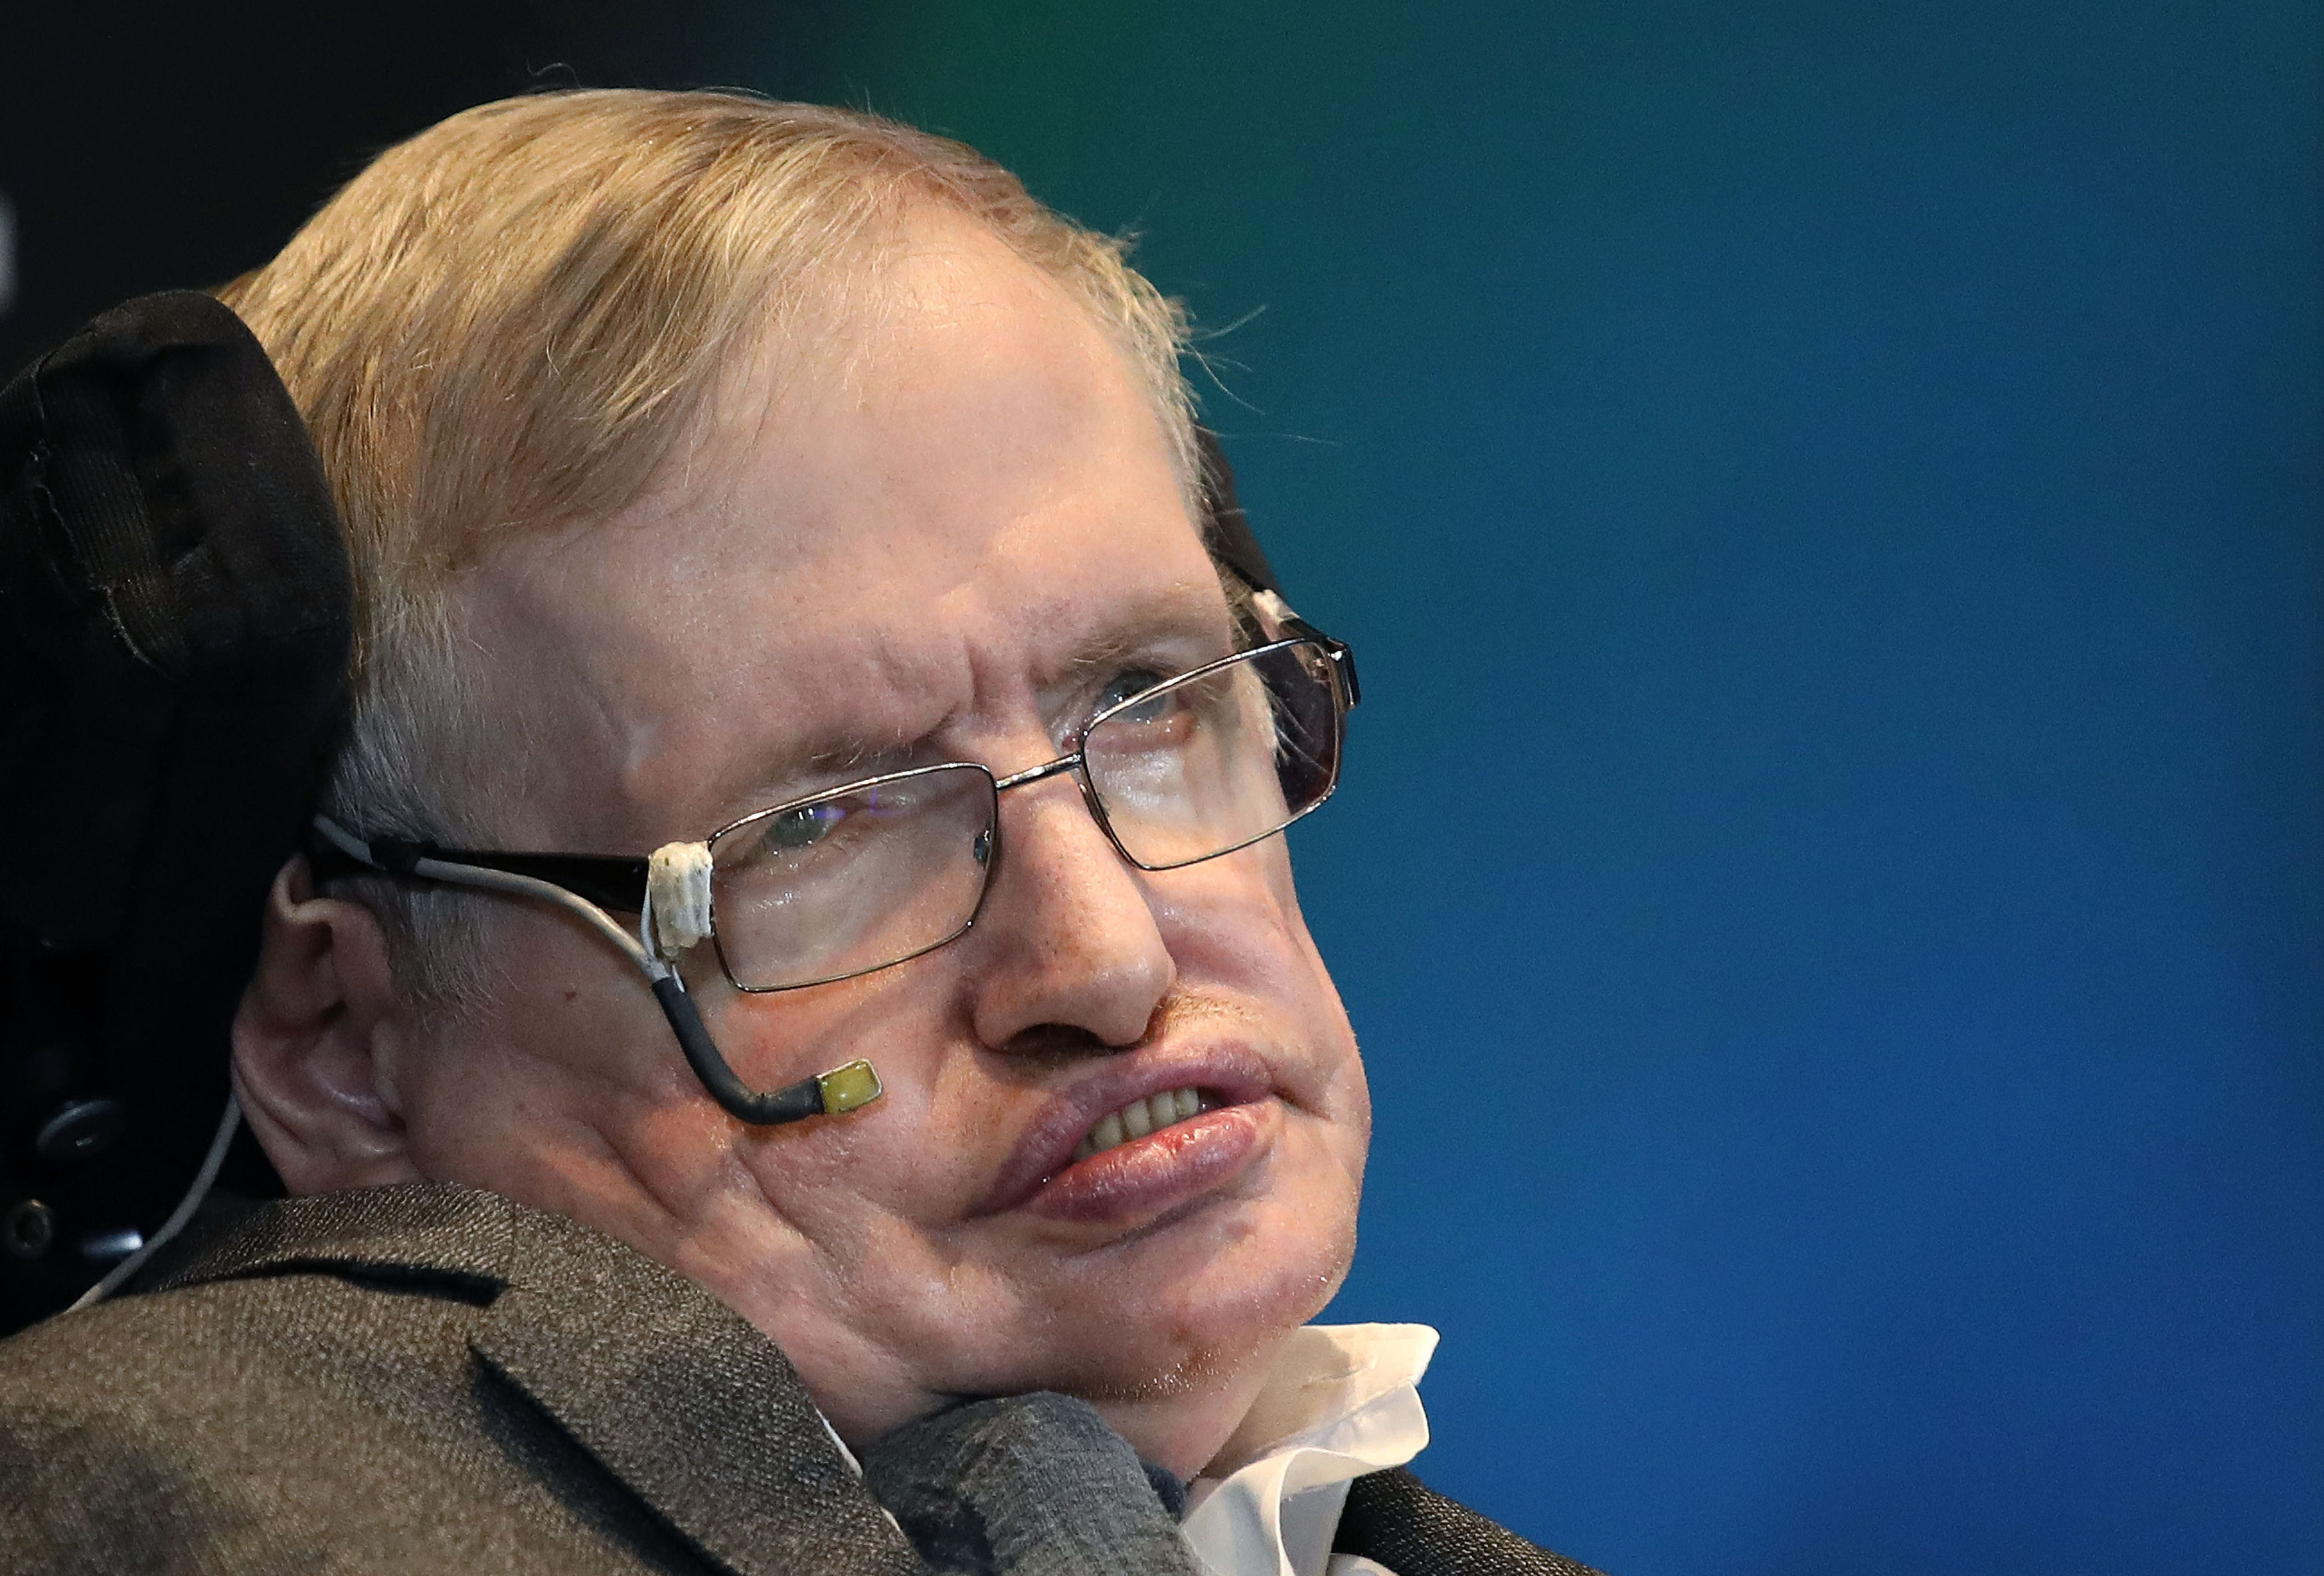 The late Stephen Hawking believed black holes were gateways to other dimensions